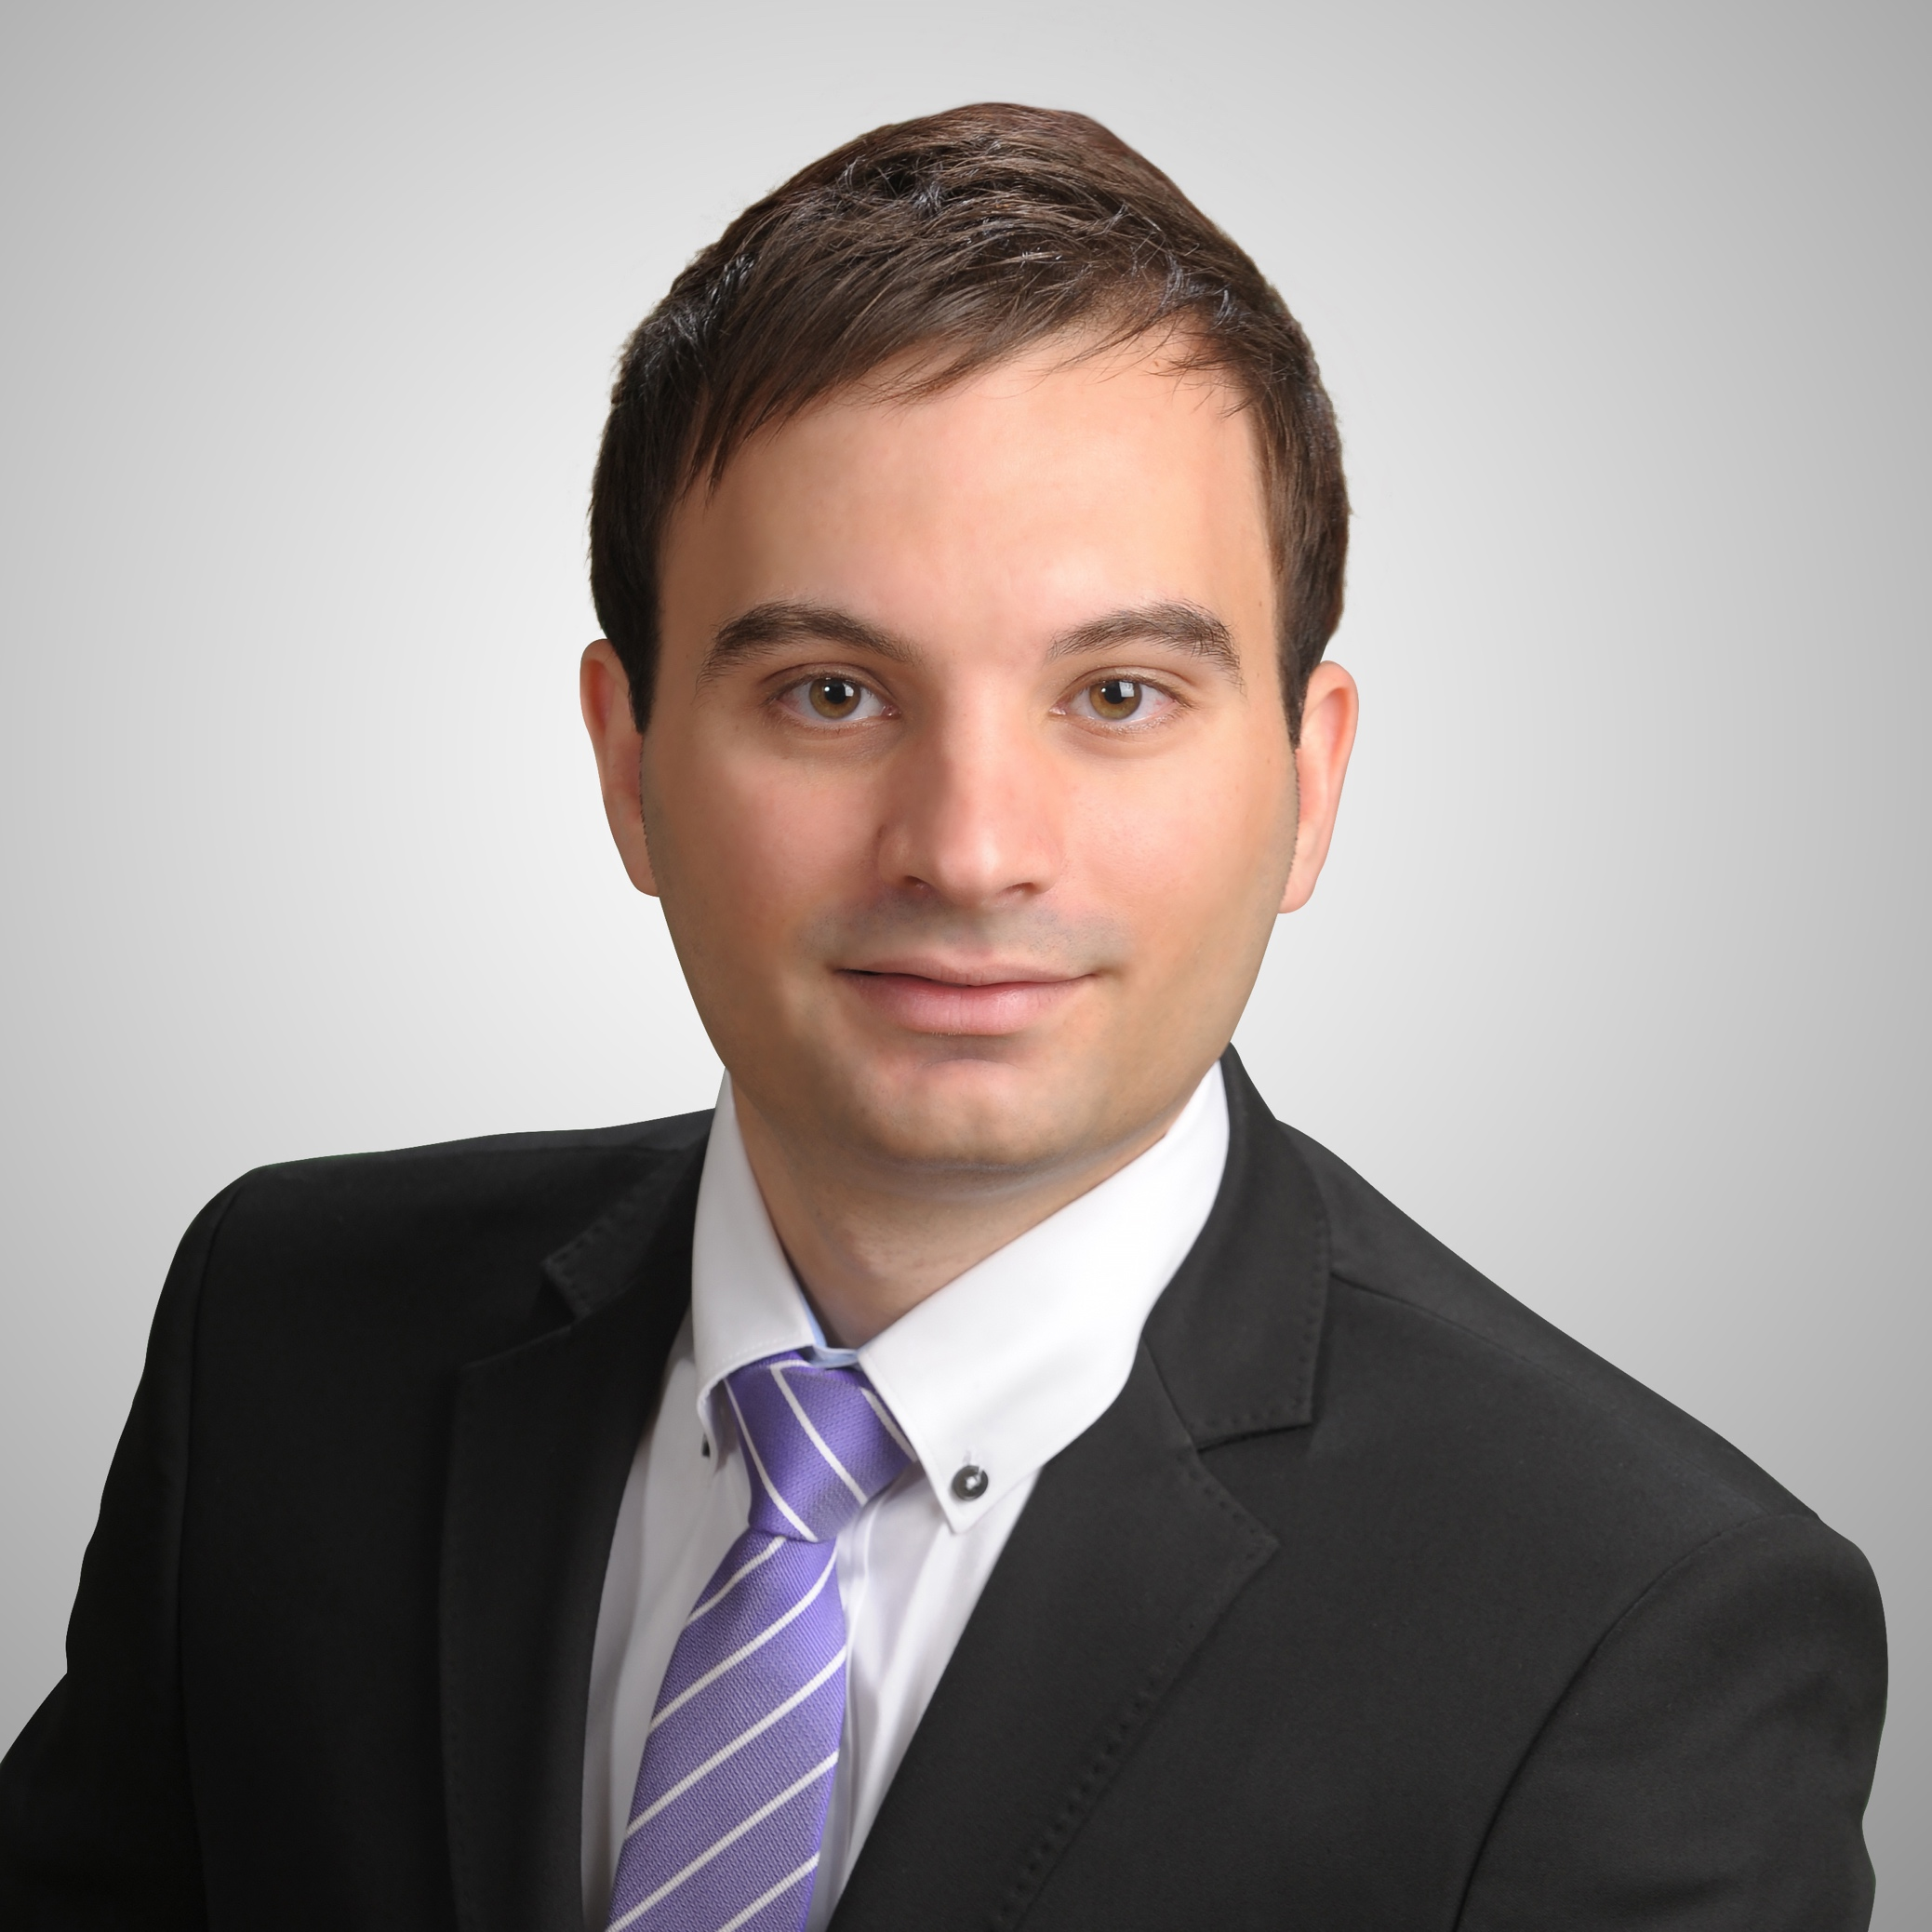 Portrait photograph of Dr Christopher Amaral wearing a black blazer, white shirt and purple and white striped tie in front of a light grey studio background.